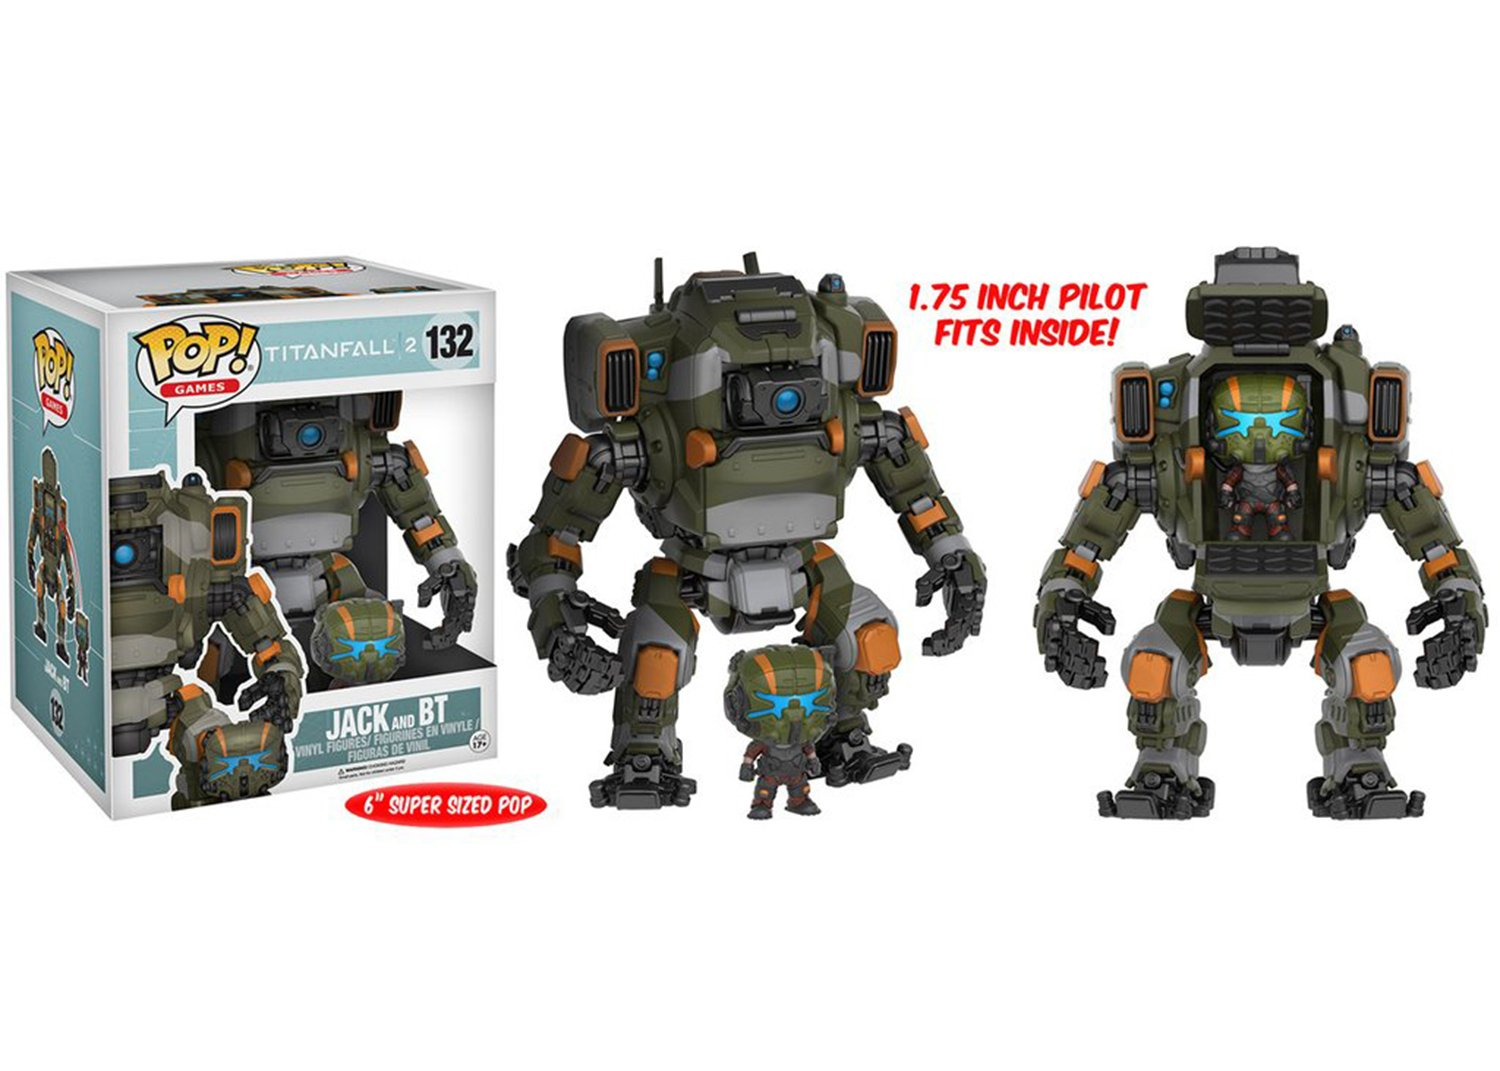 Mozlly Multipack - Funko Games Titanfall 2 Jack Pop! Vinyl Figure and BT Titan Vehicle - 6 inch Action Figure - Collectible Toy (2pc Set) (Pack of 6) - Item #S120079_X6 by Mozlly (Image #1)